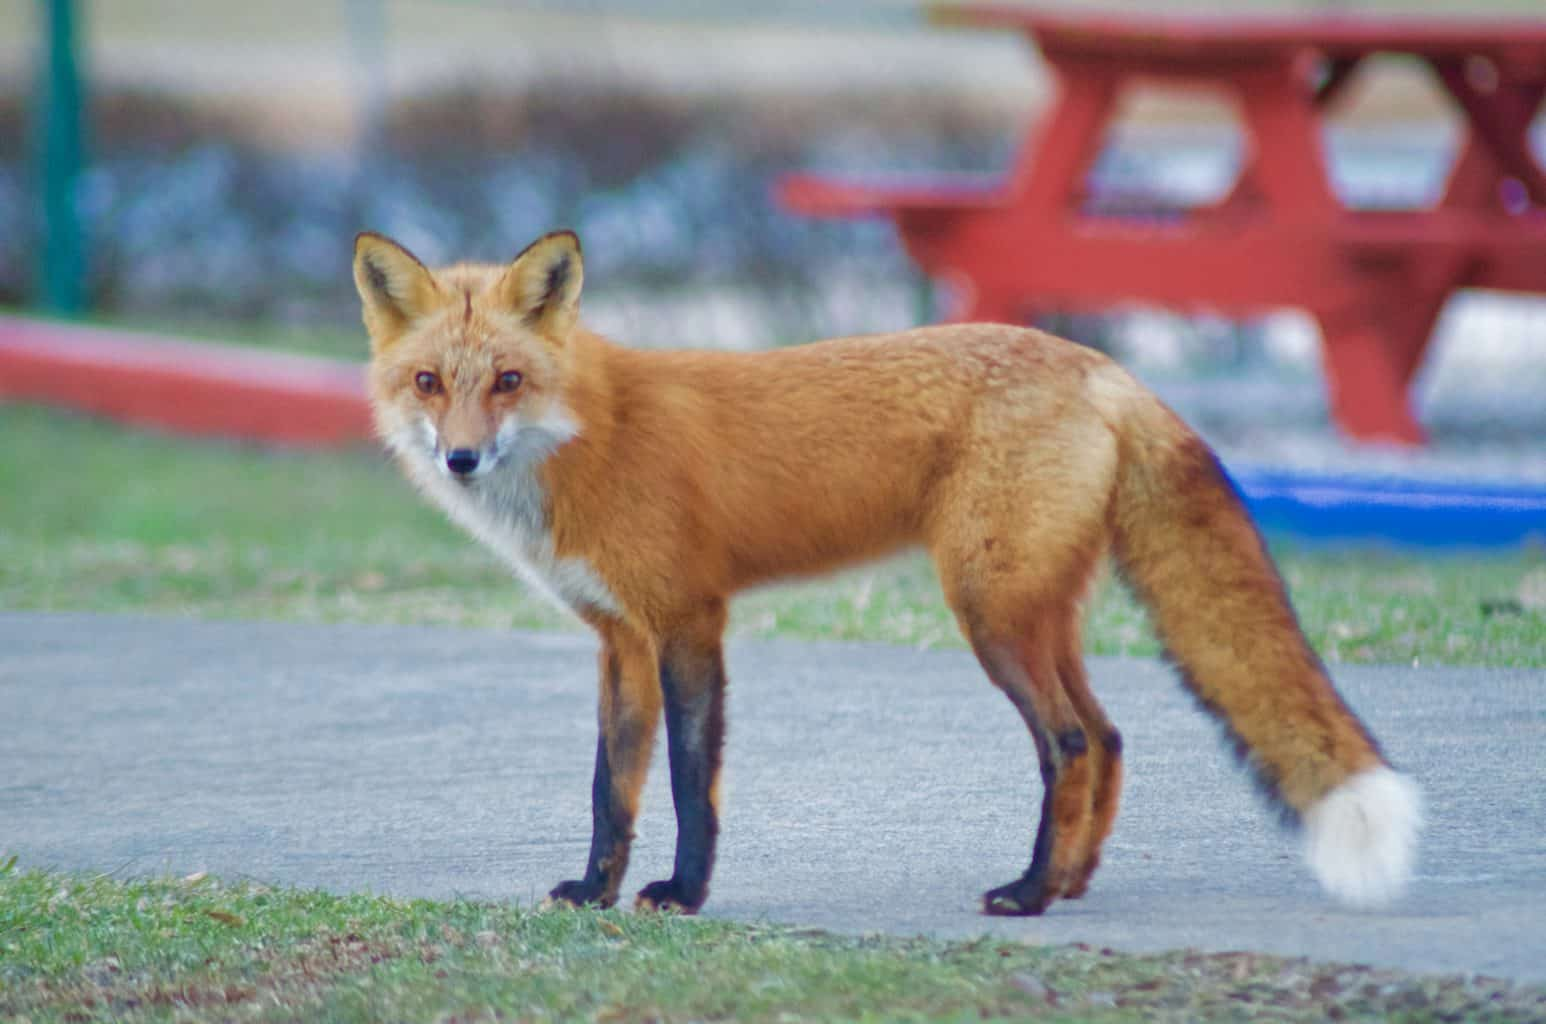 red fox at campground in Indiana